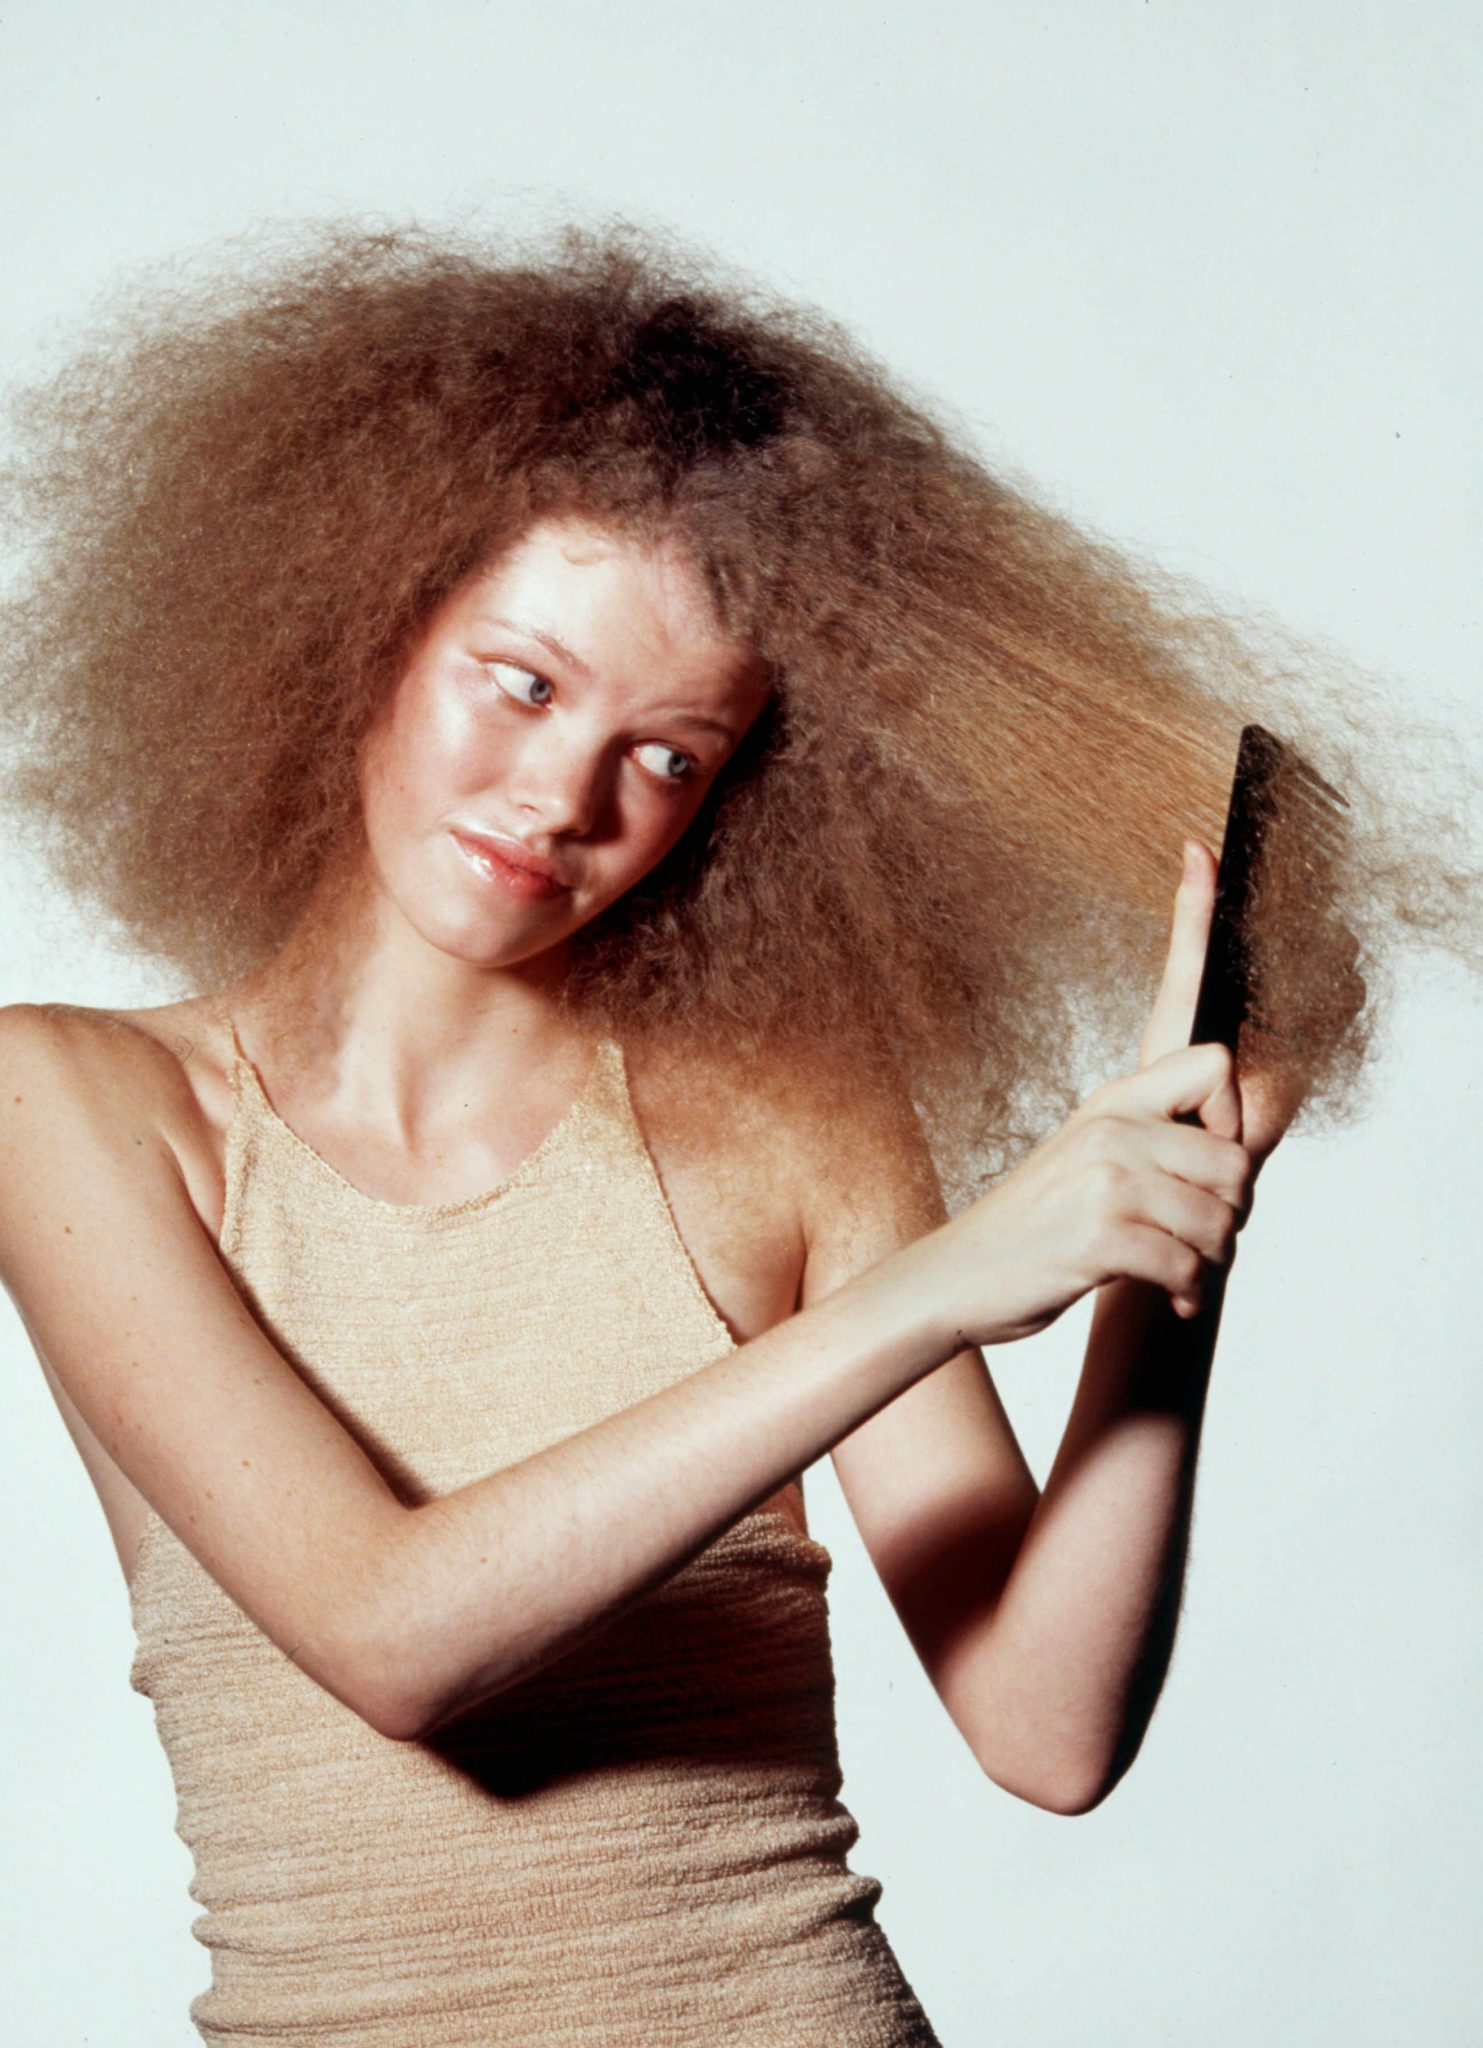 Story Slug: next3.ART KRT FASHION STORY SLUGGED: SUMMER KRT PHOTOGRAPH BY EVANS CAGLAGE/DALLAS MORNING NEWS (FORT WORTH OUT) (KRT13-July 24) Moisture, experts say, has a way of upsetting the chemistry in hair, making curly hair curlier and kinking broken ends in straight hair. Using styling products with silicone, not using heated styling appliances and avoiding the sun can all help to combat the frizzies. (DA) AP,PL,ARR (smd41505) 1997 (COLOR) (This photo may be of interest to At-Risk Readers) (Additional photos available on KRT/Presslink or upon request) --NO MAGS, NO SALES -- ORG XMIT: KRT13